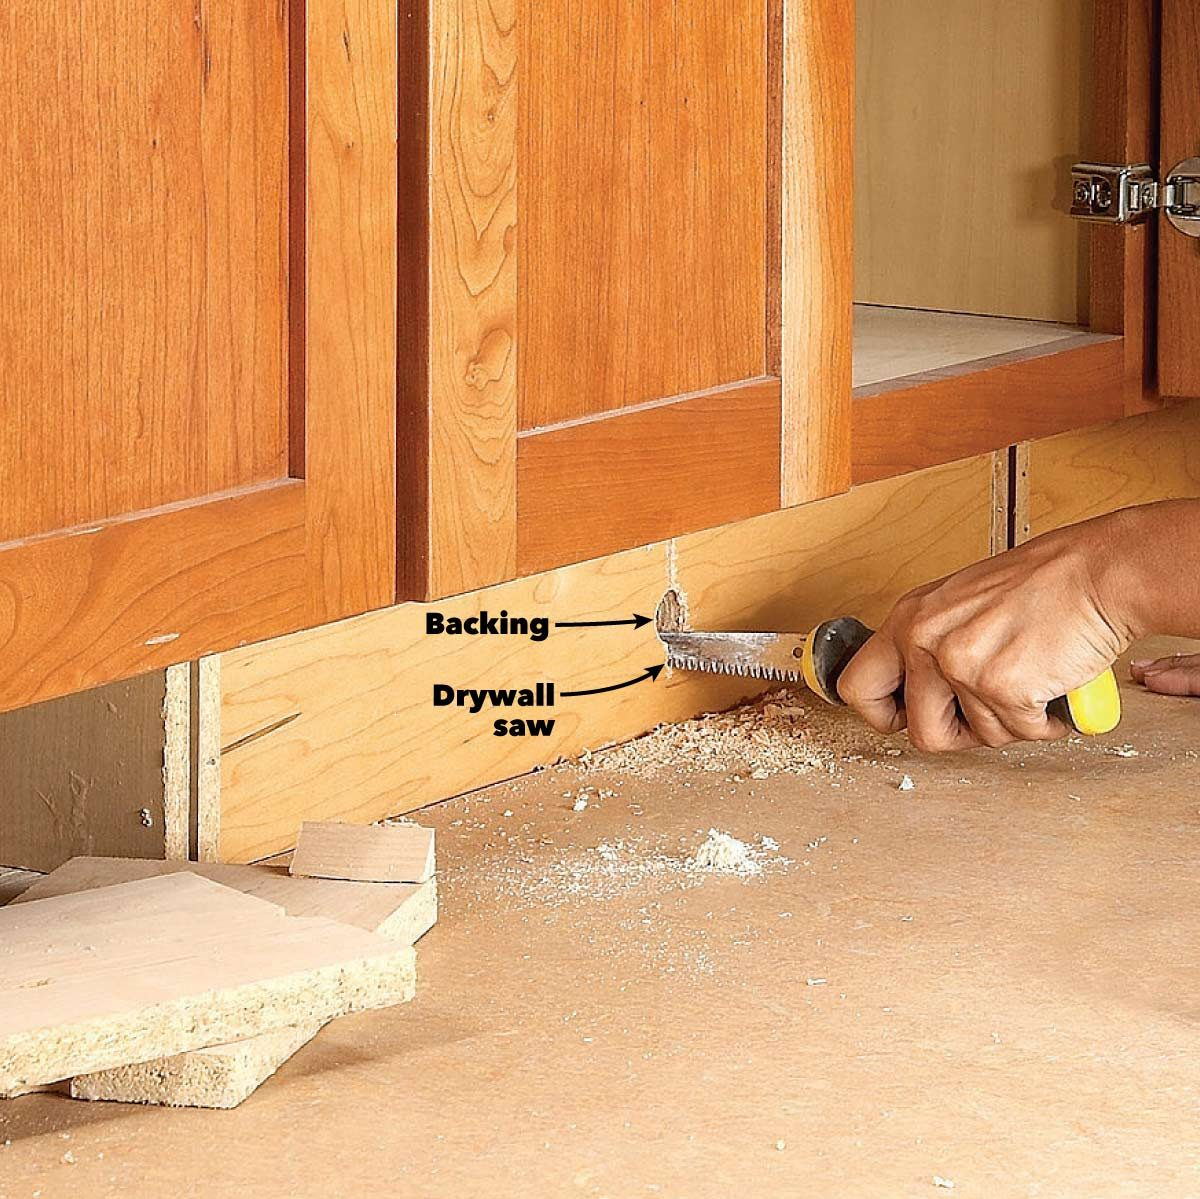 How To Build Under Cabinet Drawers Increase Kitchen Storage Diy Family Handyman